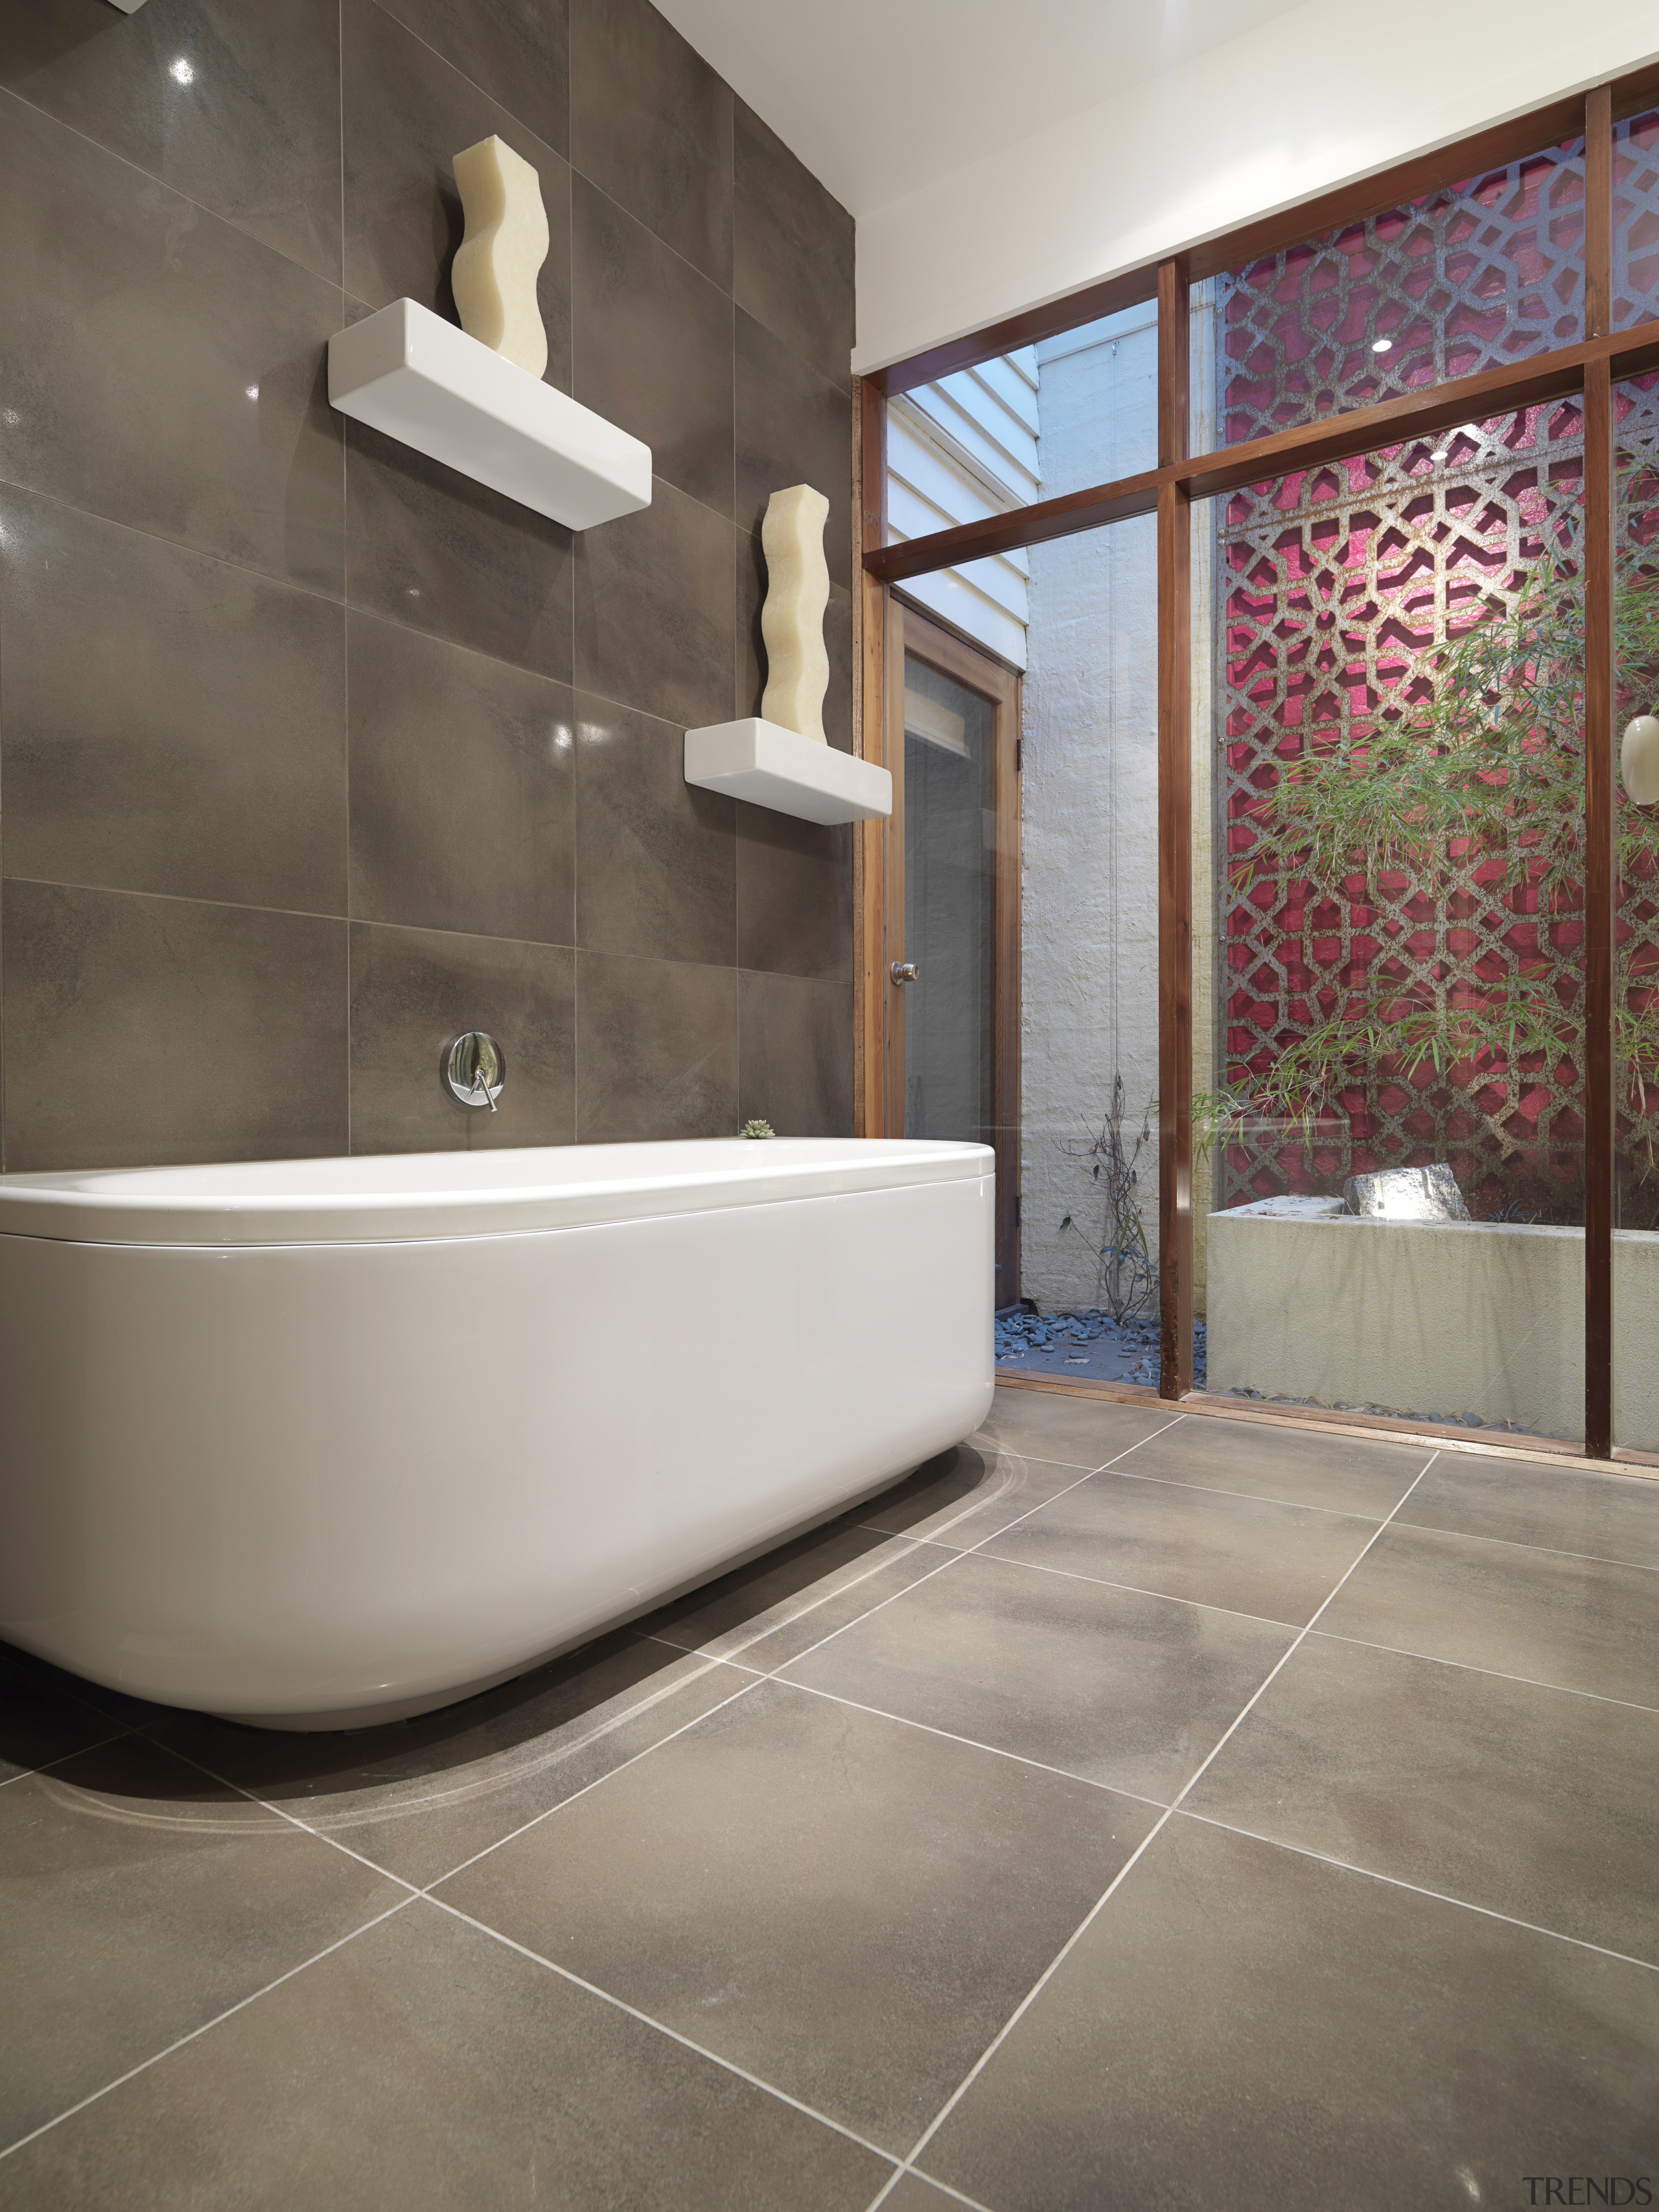 View of renovated bathroom, featuring bathtub, ceramic tiled bathroom, floor, flooring, interior design, room, tile, wall, gray, brown